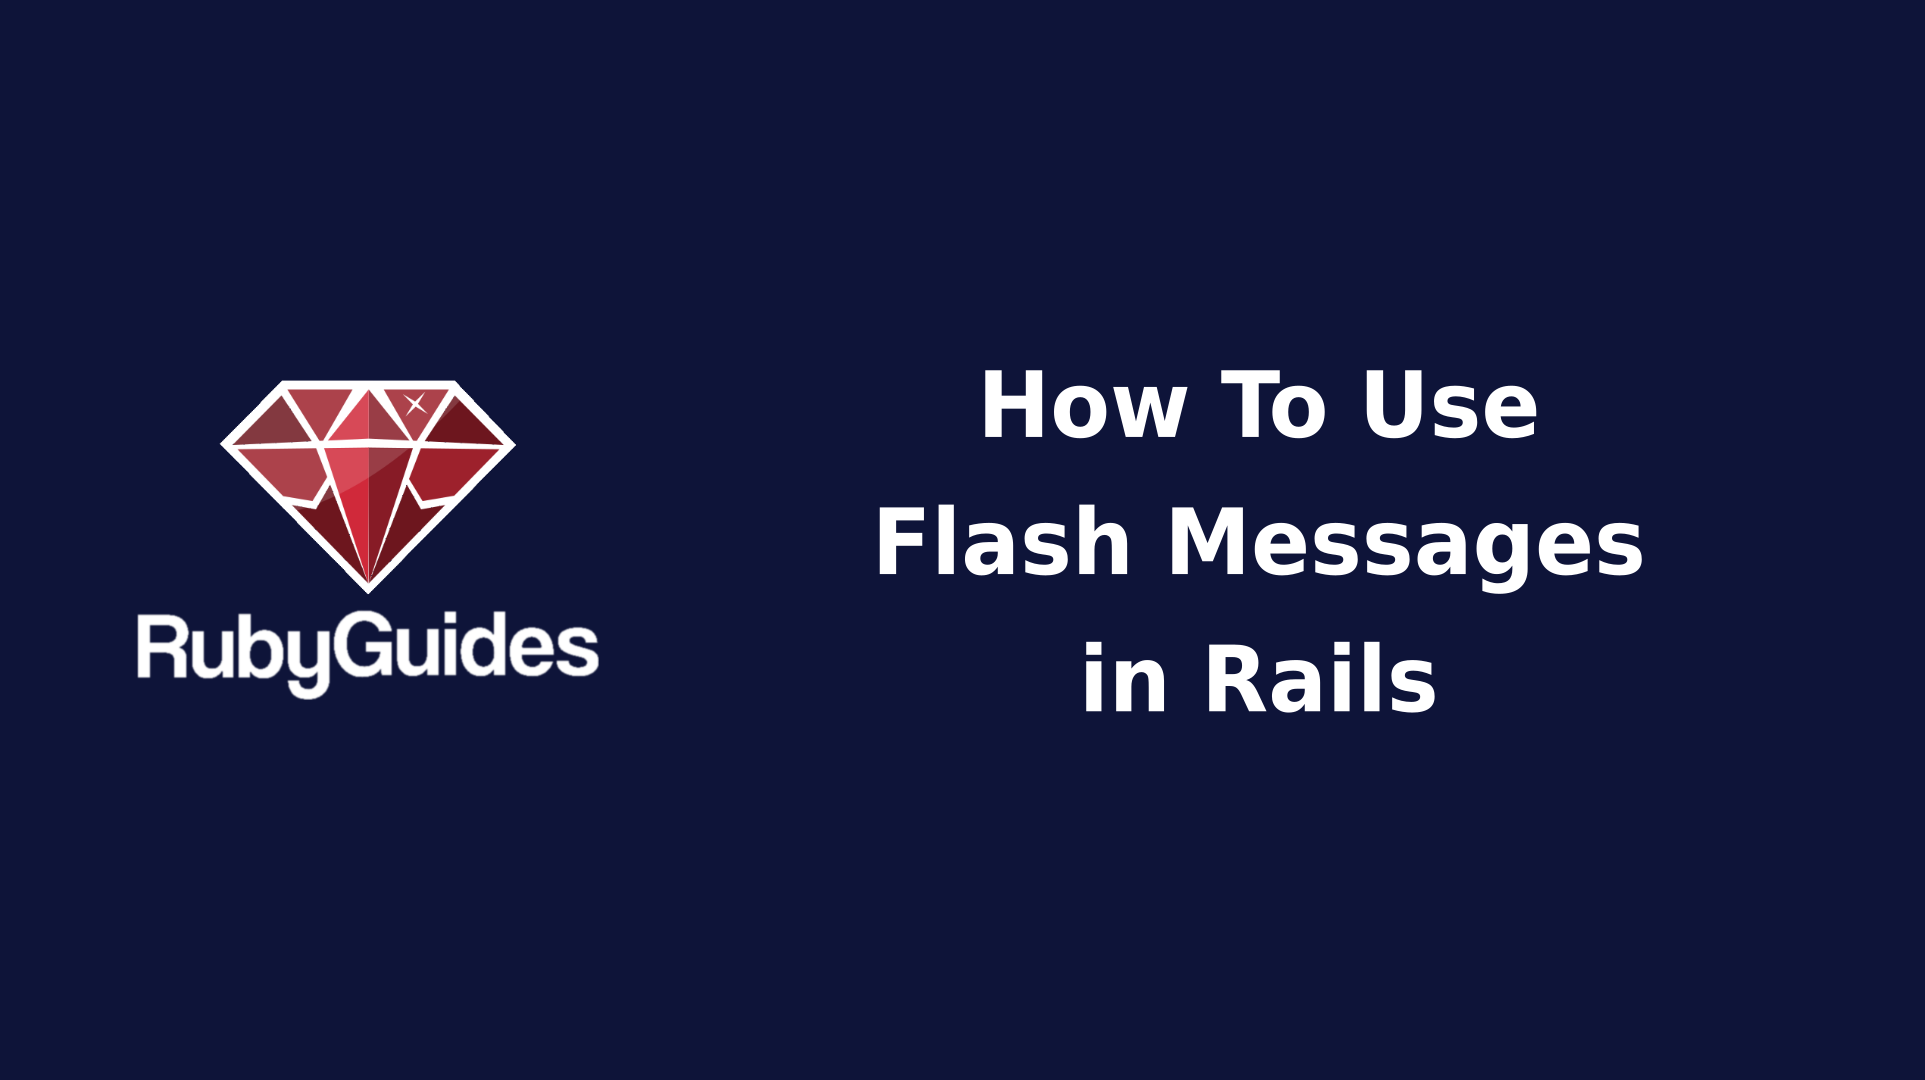 How to Use Flash Messages in Rails